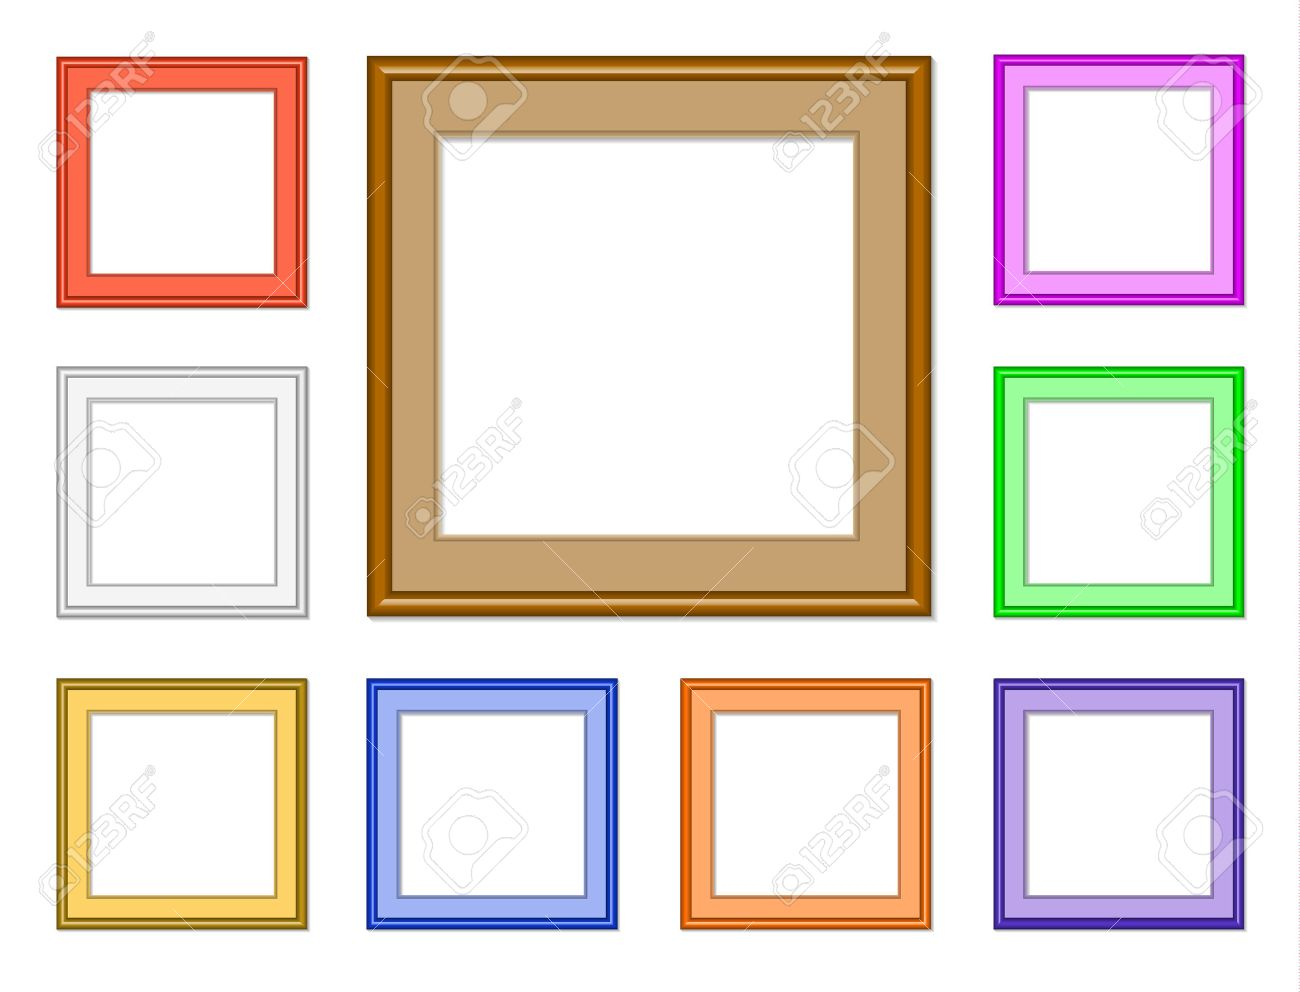 9 colorful square frames for collection image picture gallery or for web design stock